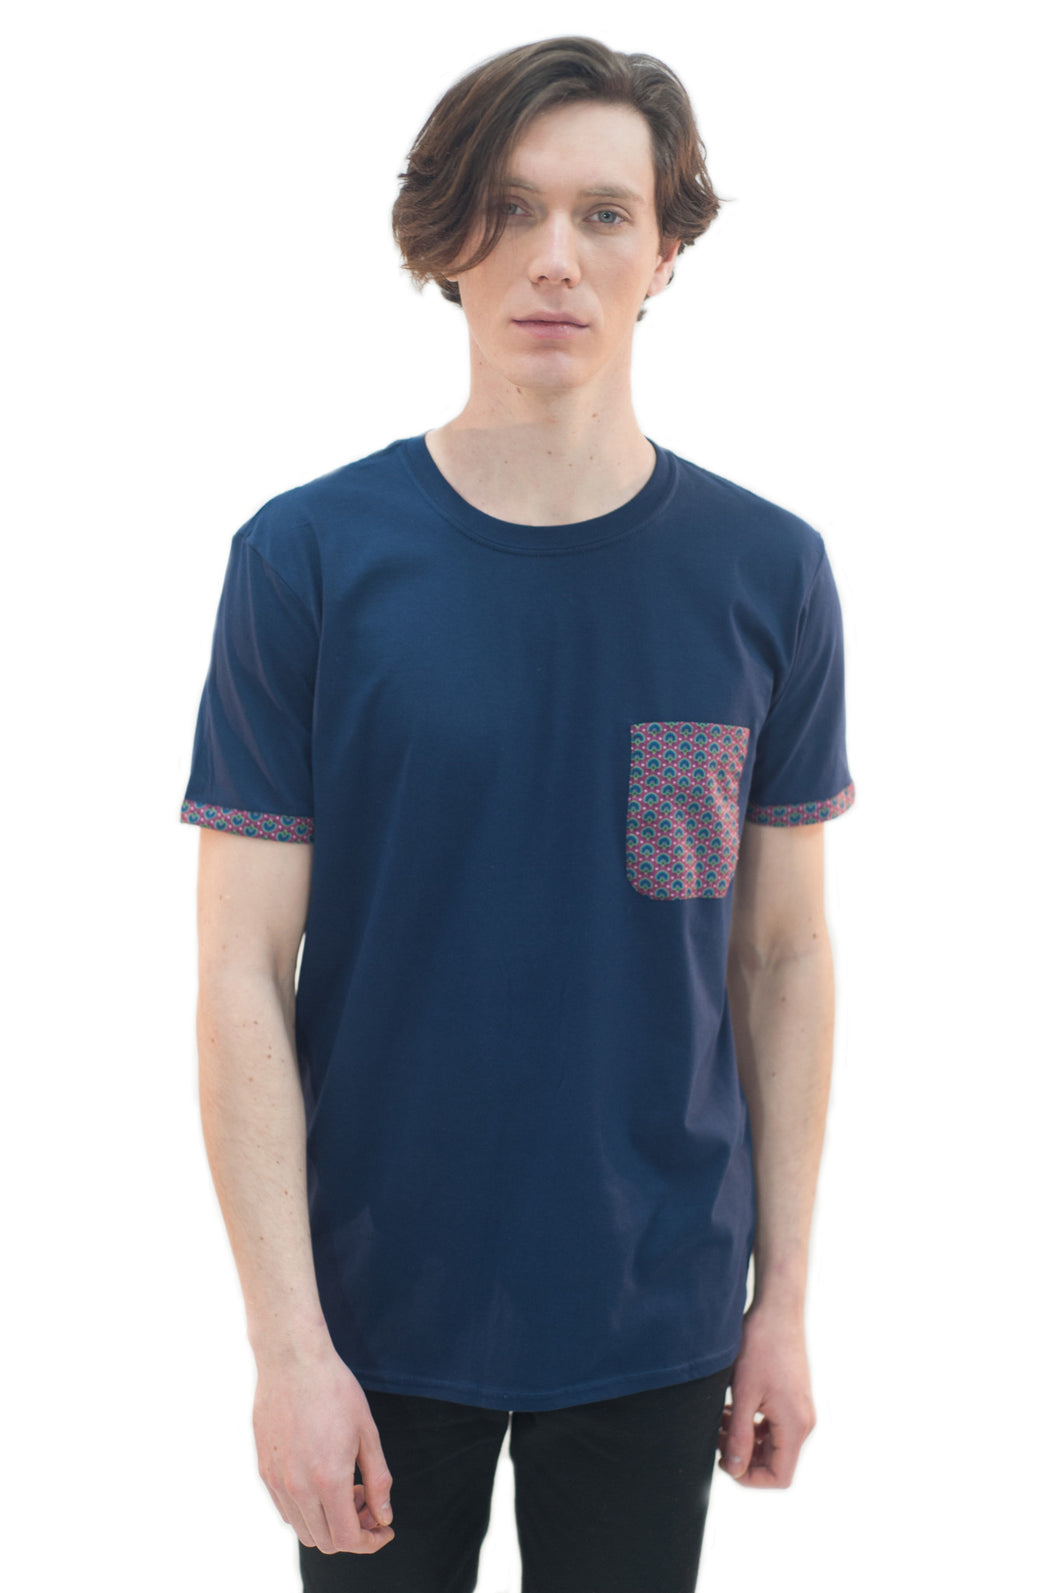 Marmaduke London Cotton T-shirt featuring Liberty print pocket details. Paisley. Designed and Handmade in England.